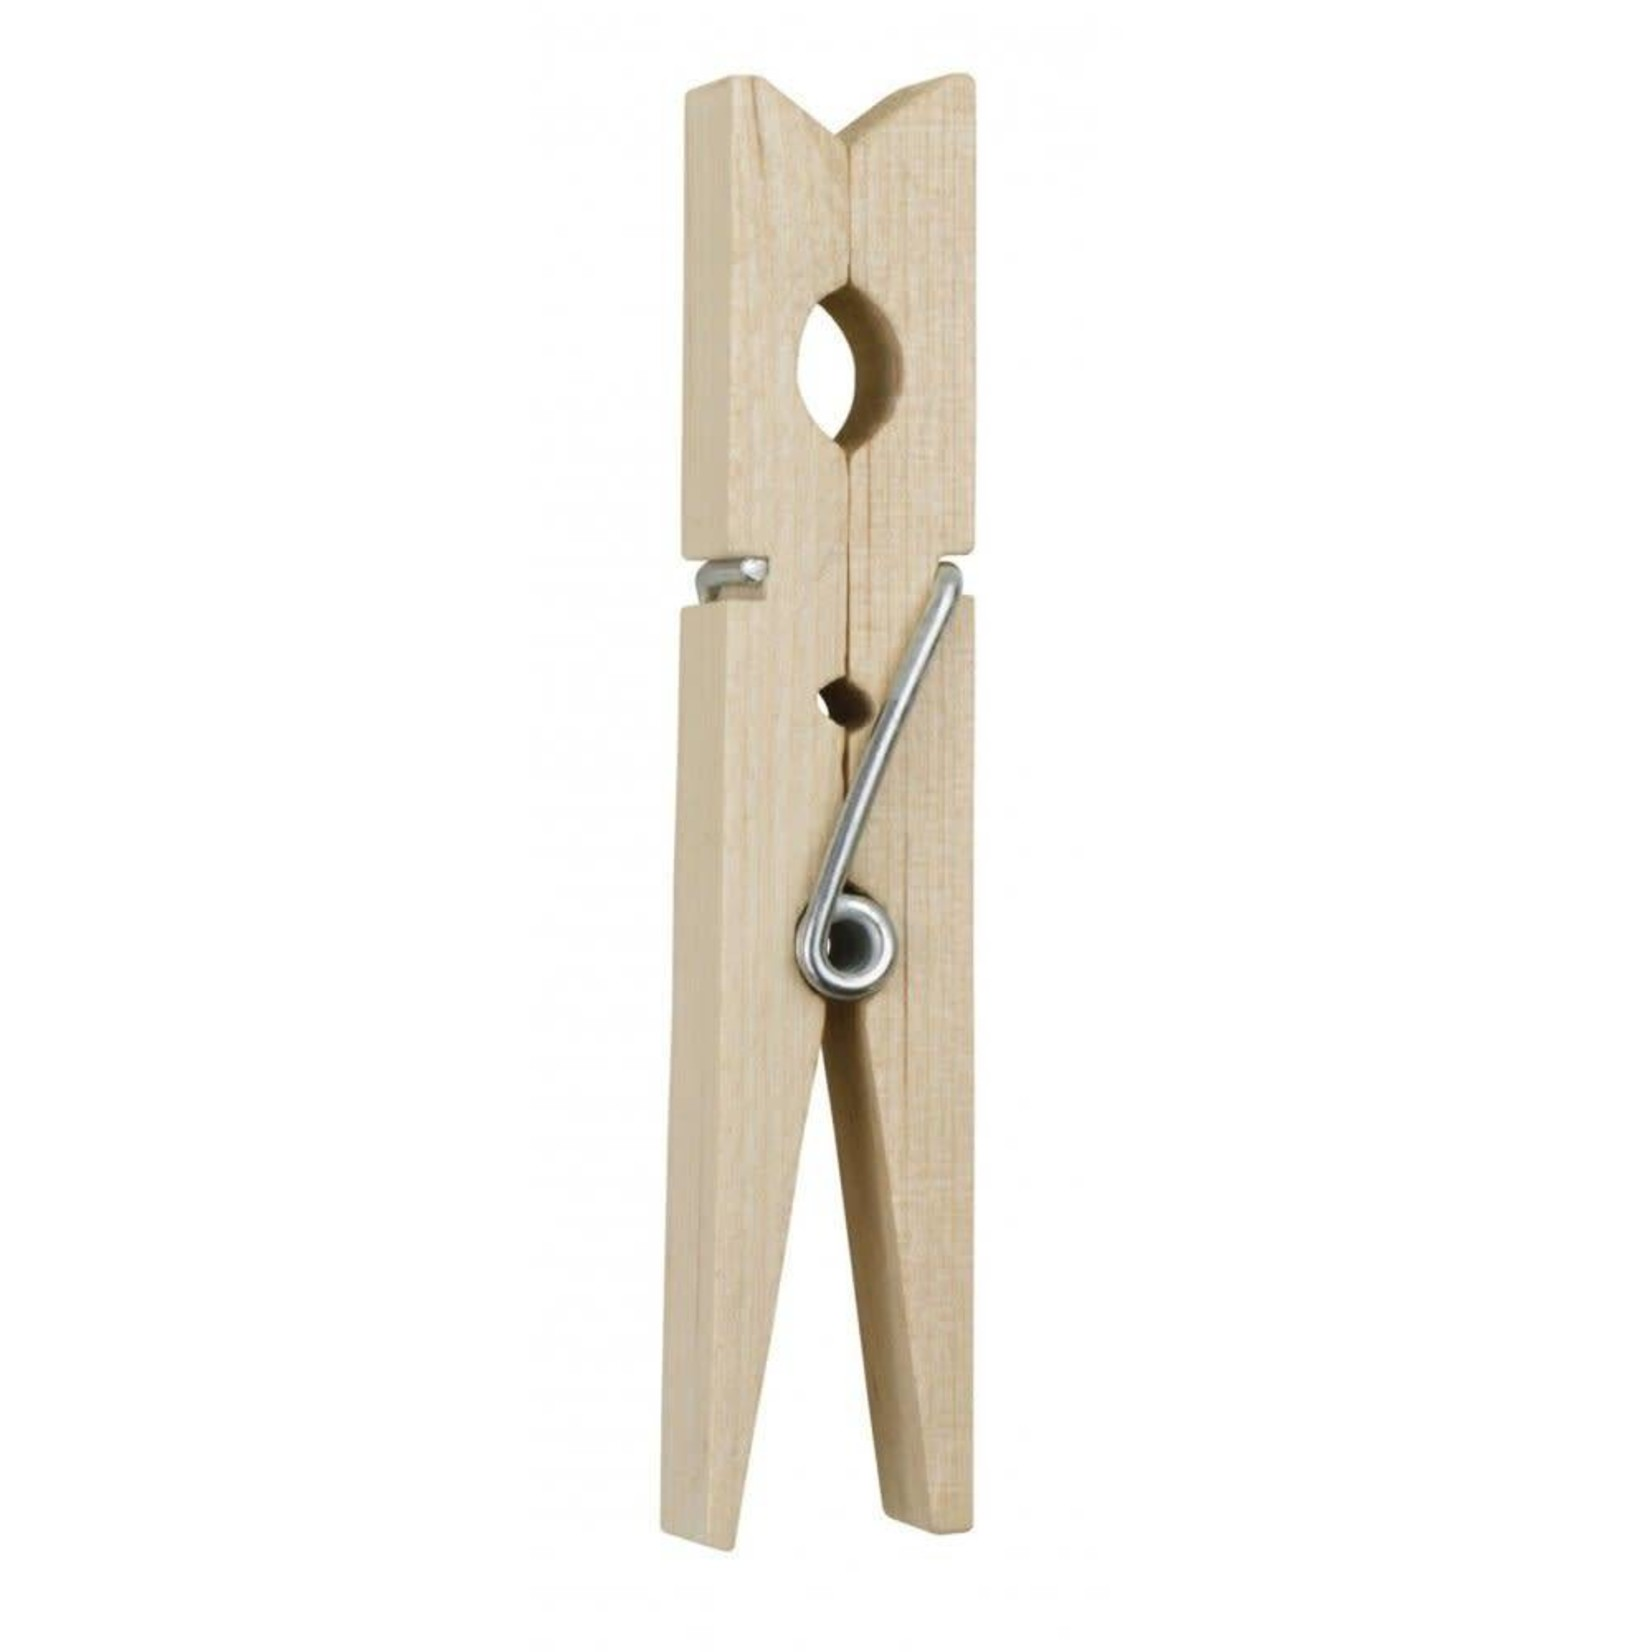 Addis ADDIS PEGS WOODEN PEGS PACK OF 36